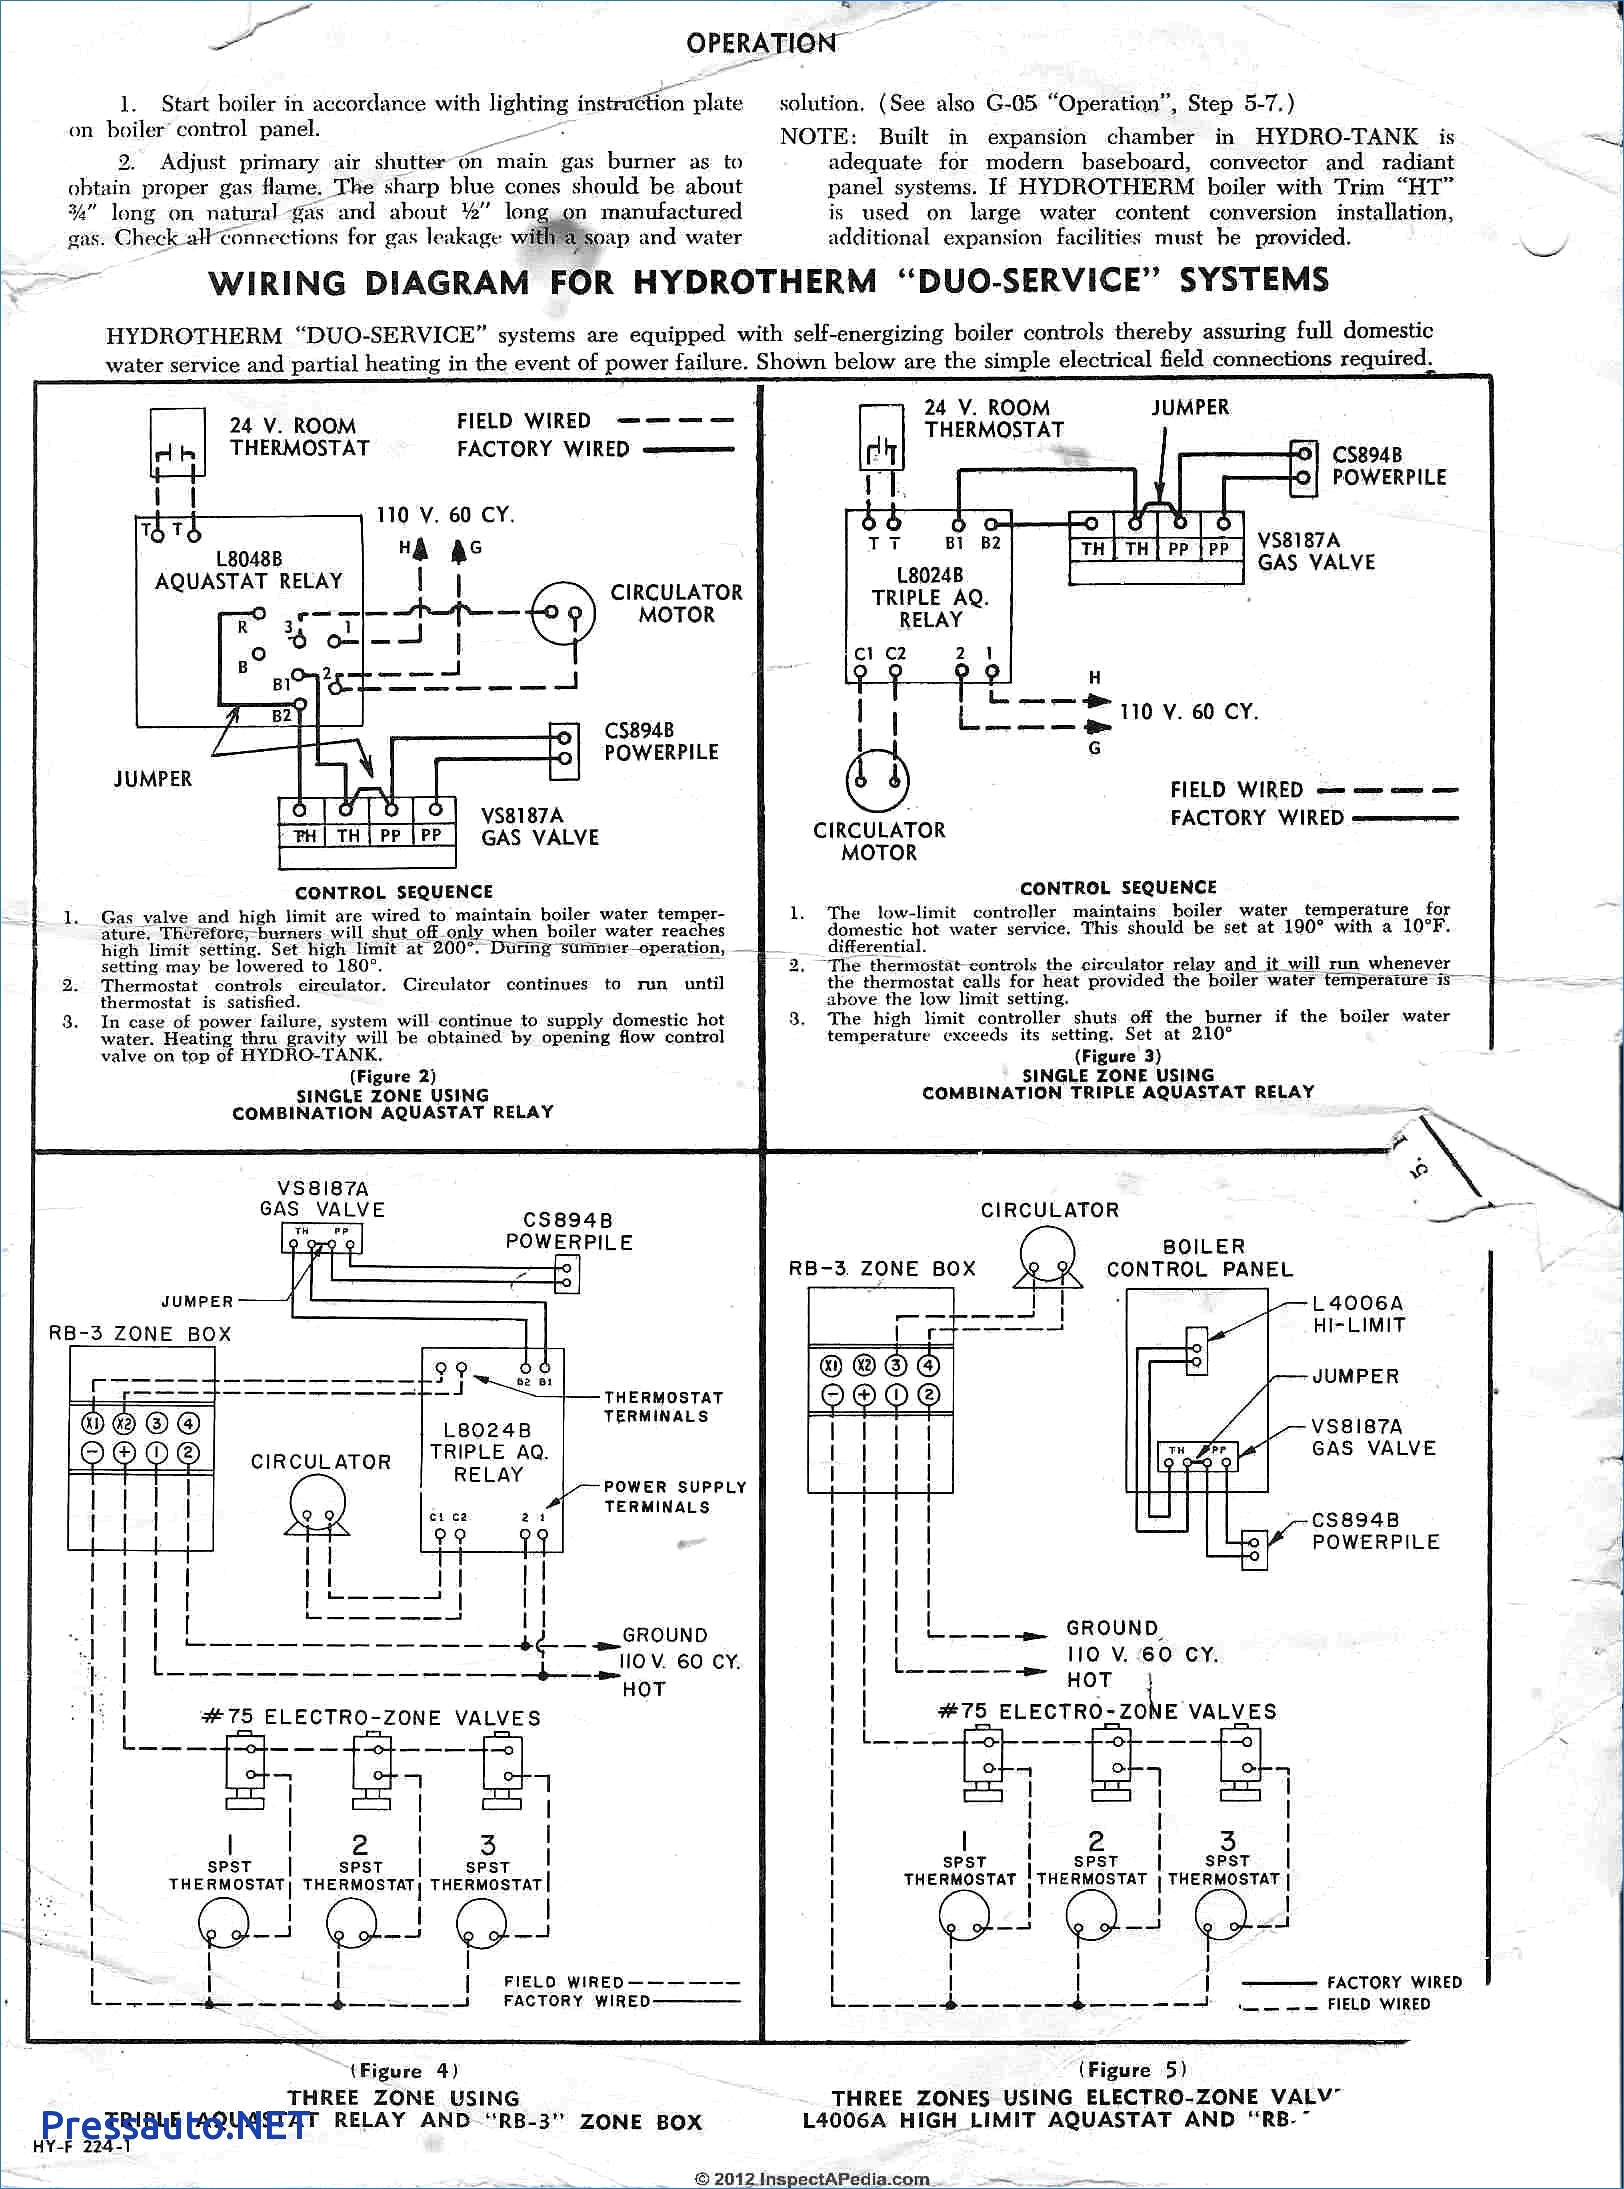 square d mcc bucket wiring diagram Download-stunning square d motor control center wiring diagram pictures and rh releaseganji net square d model 4-i